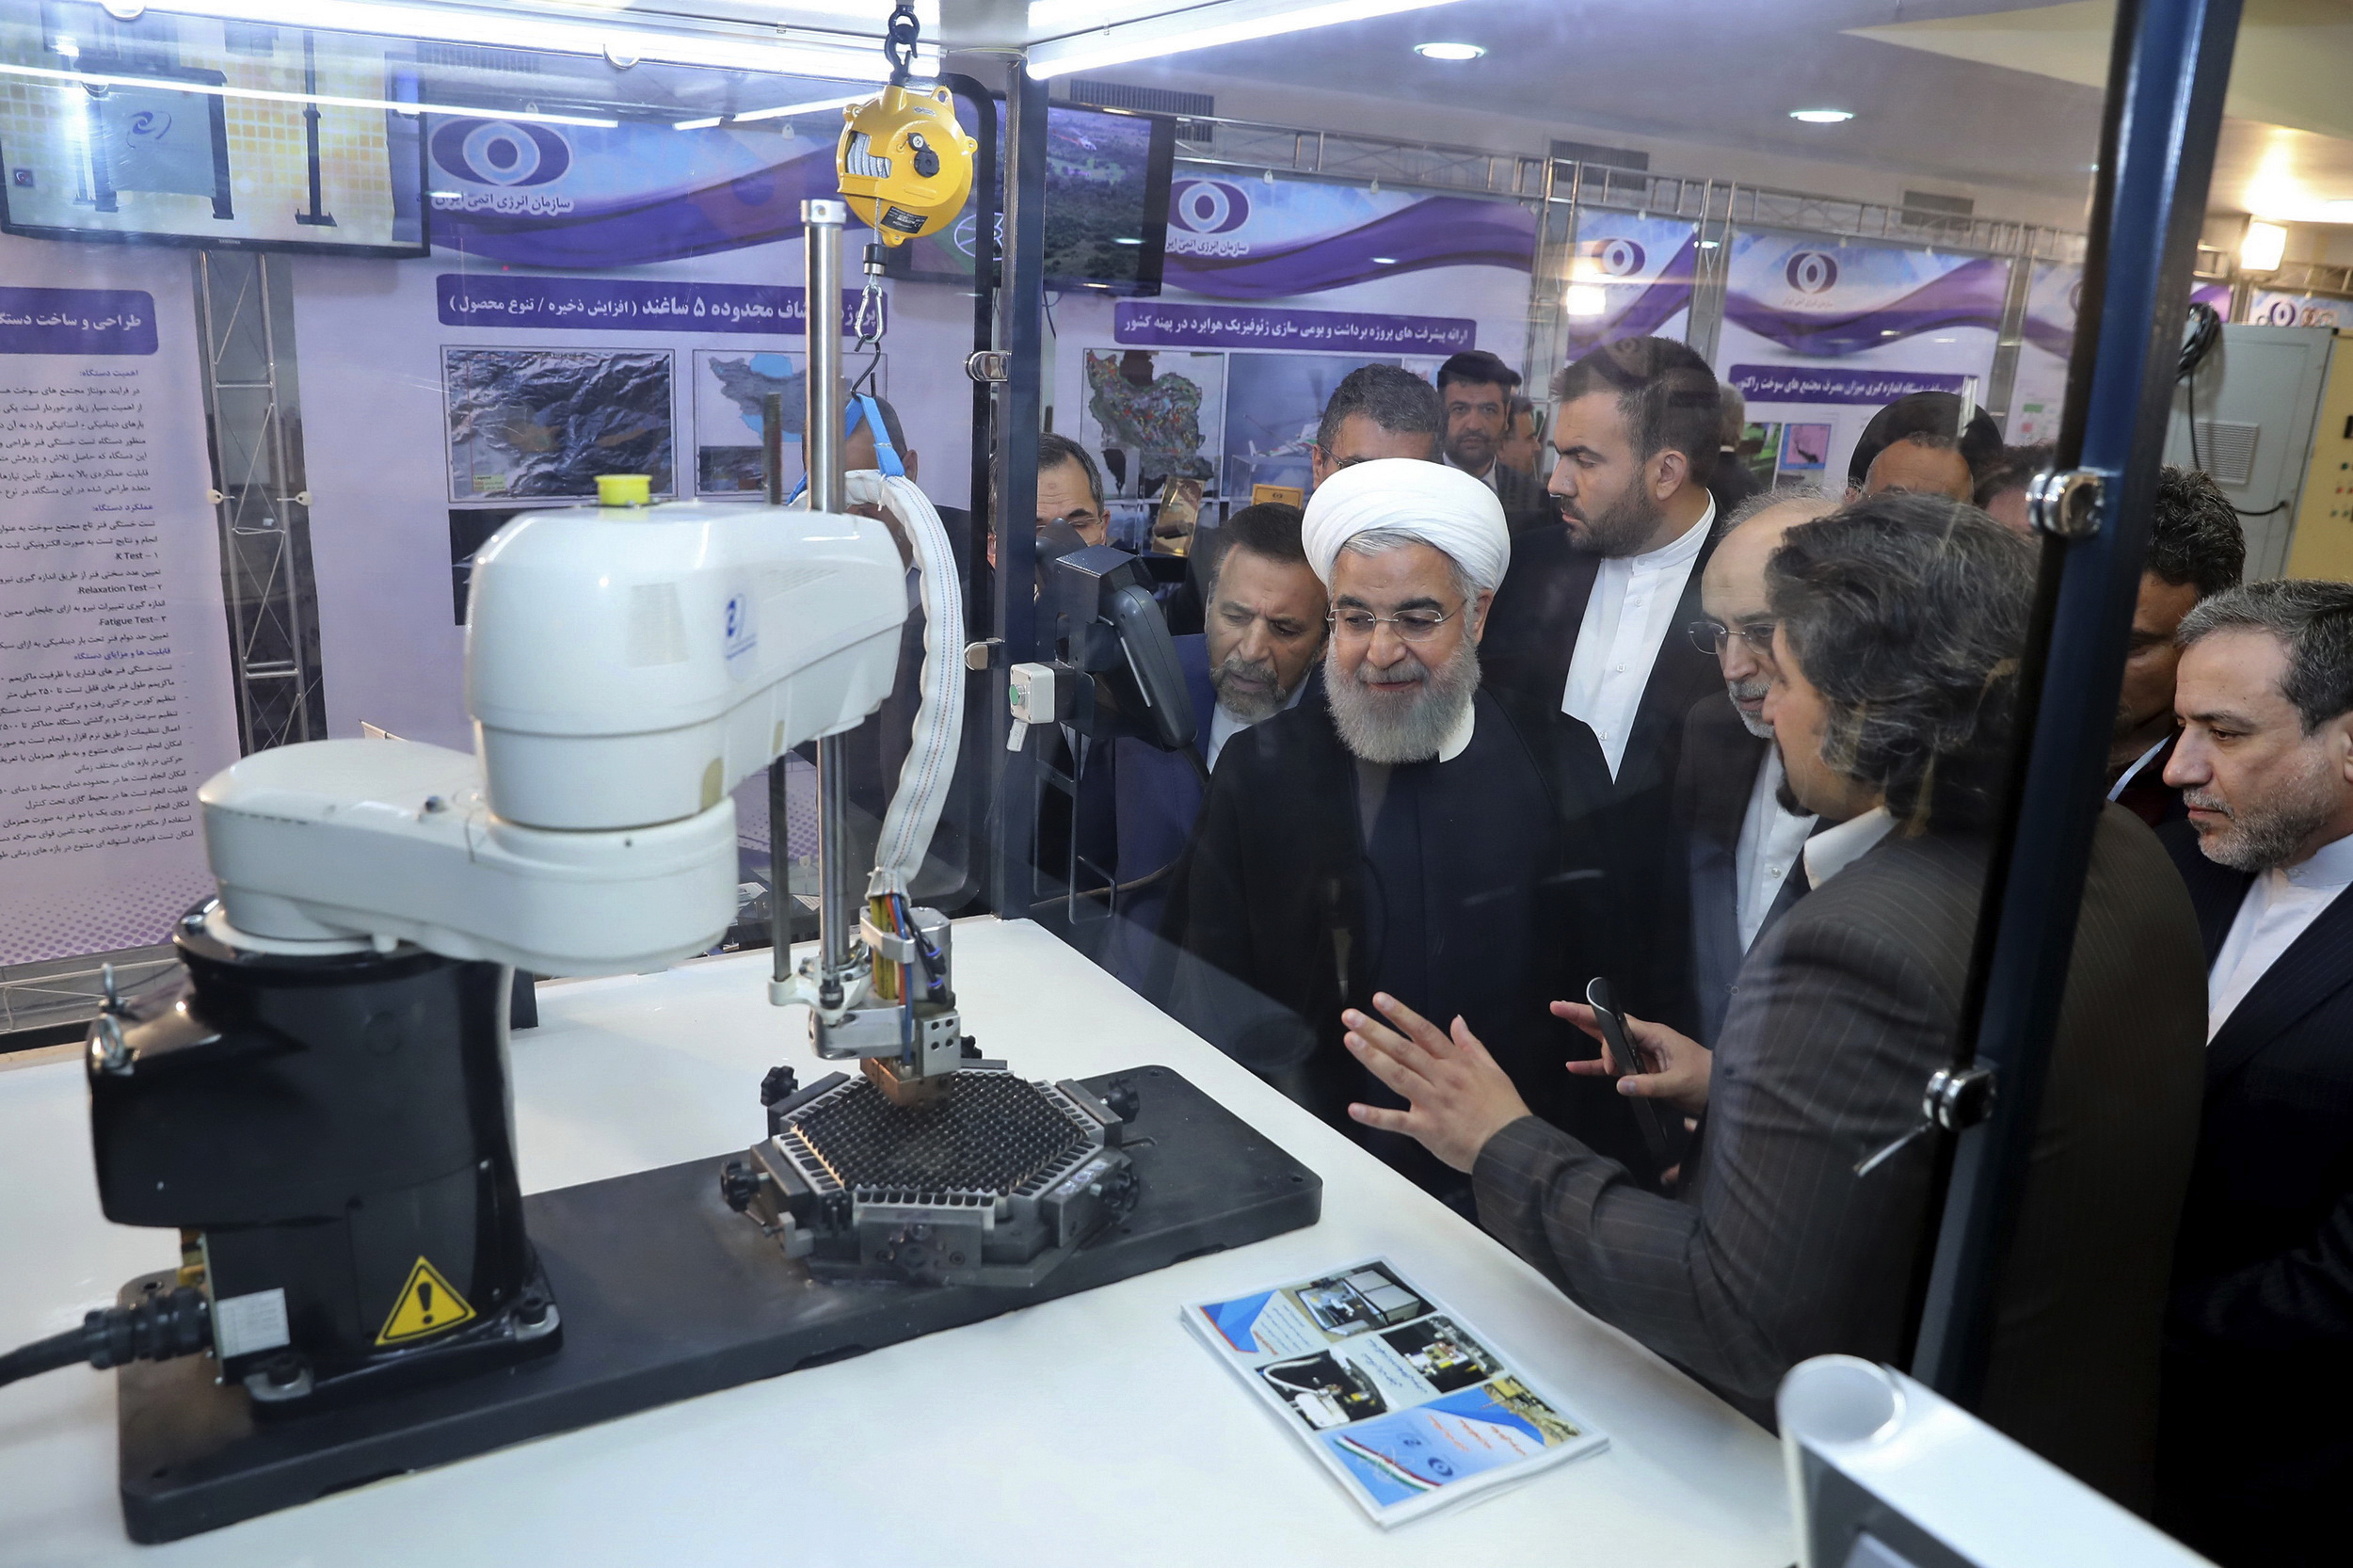 """IIn this photo released by an official website of the office of the Iranian Presidency, President Hassan Rouhani listens to explanations on new nuclear achievements at a ceremony to mark """"National Nuclear Day,"""" in Tehran, Iran, April 9, 2018."""